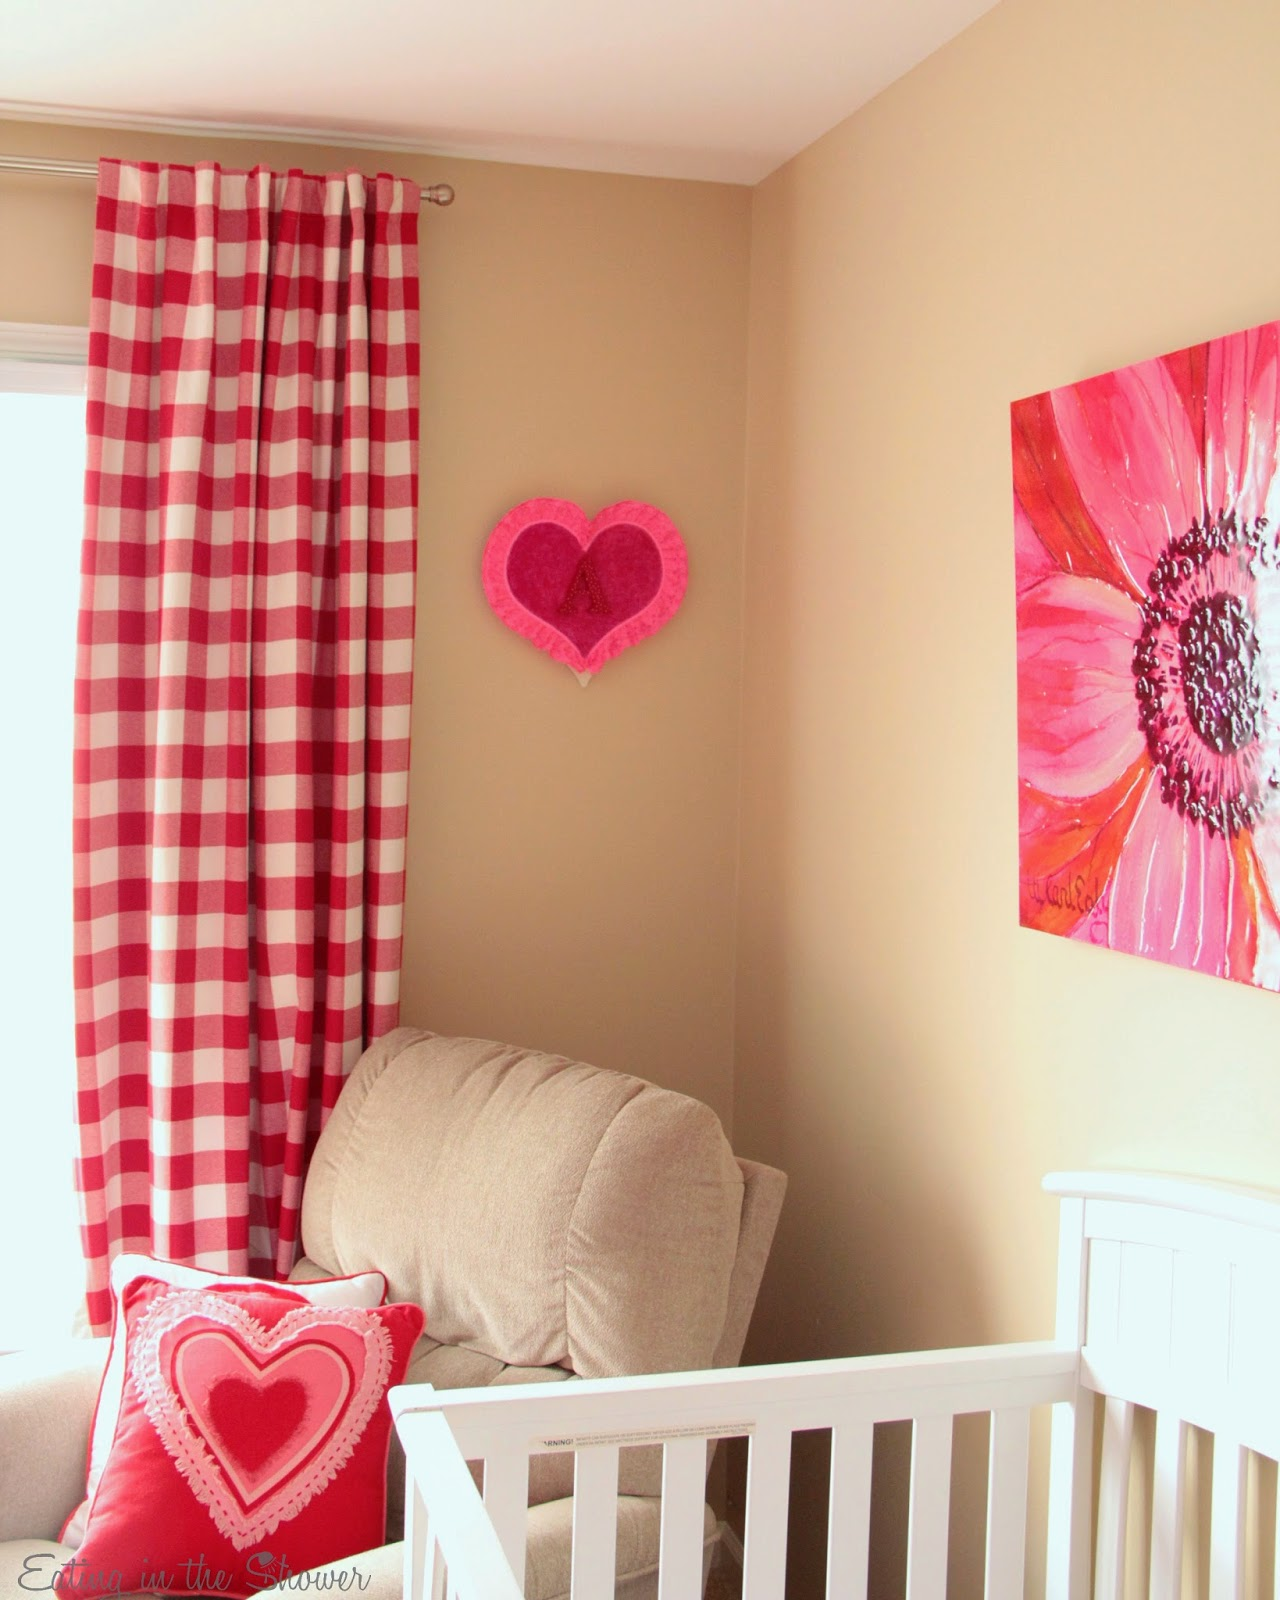 Pink and red nursey decor